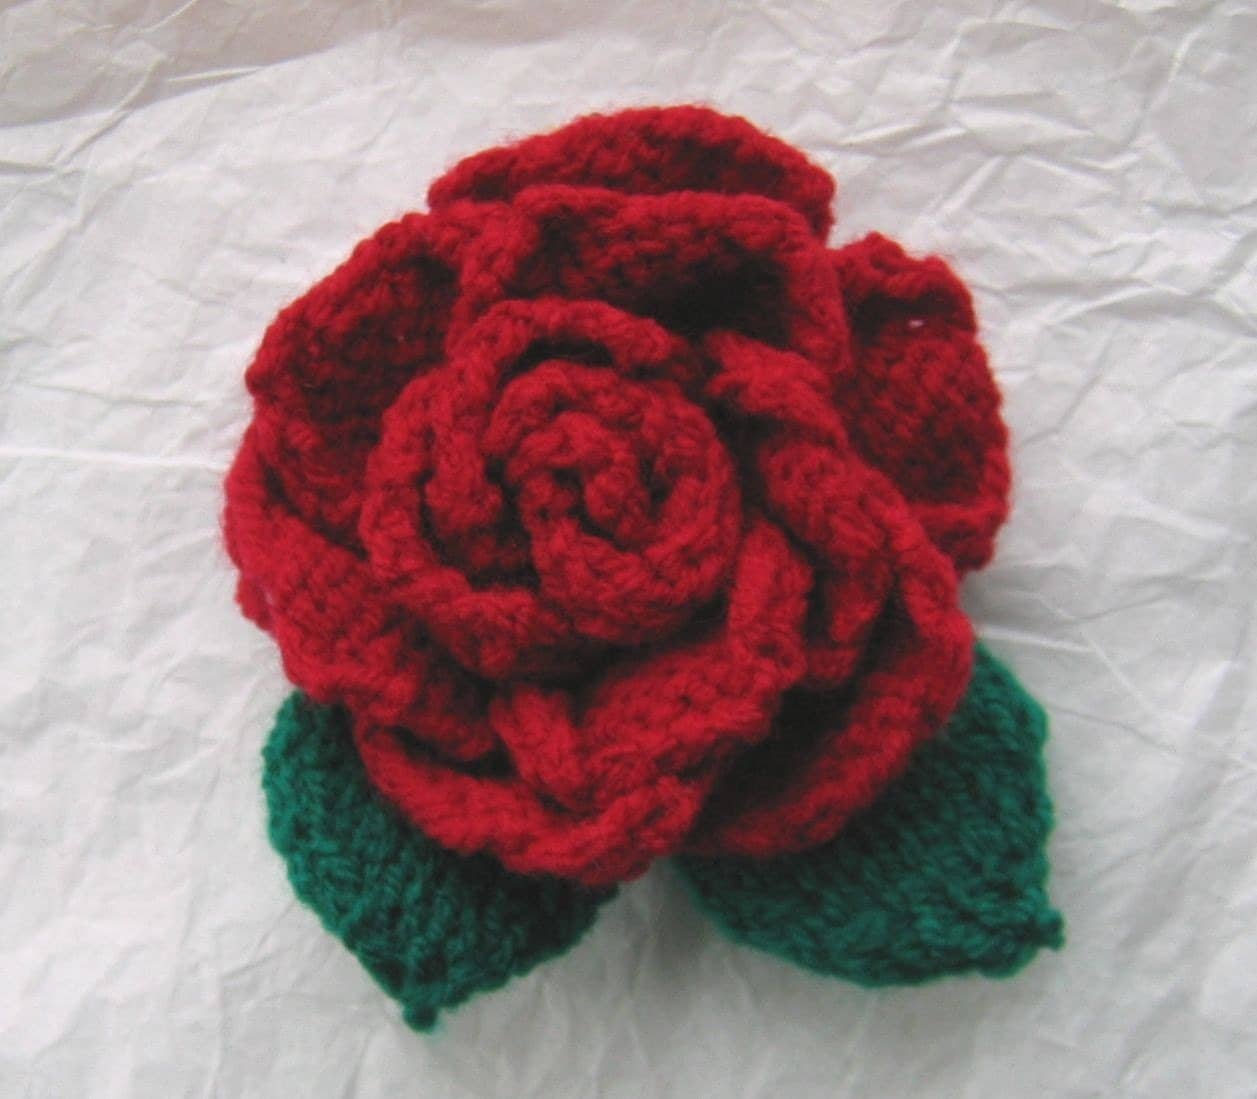 Flower Knitting Patterns Free : Knitting Pattern ROSE flower by email by gigglinggoblin on Etsy